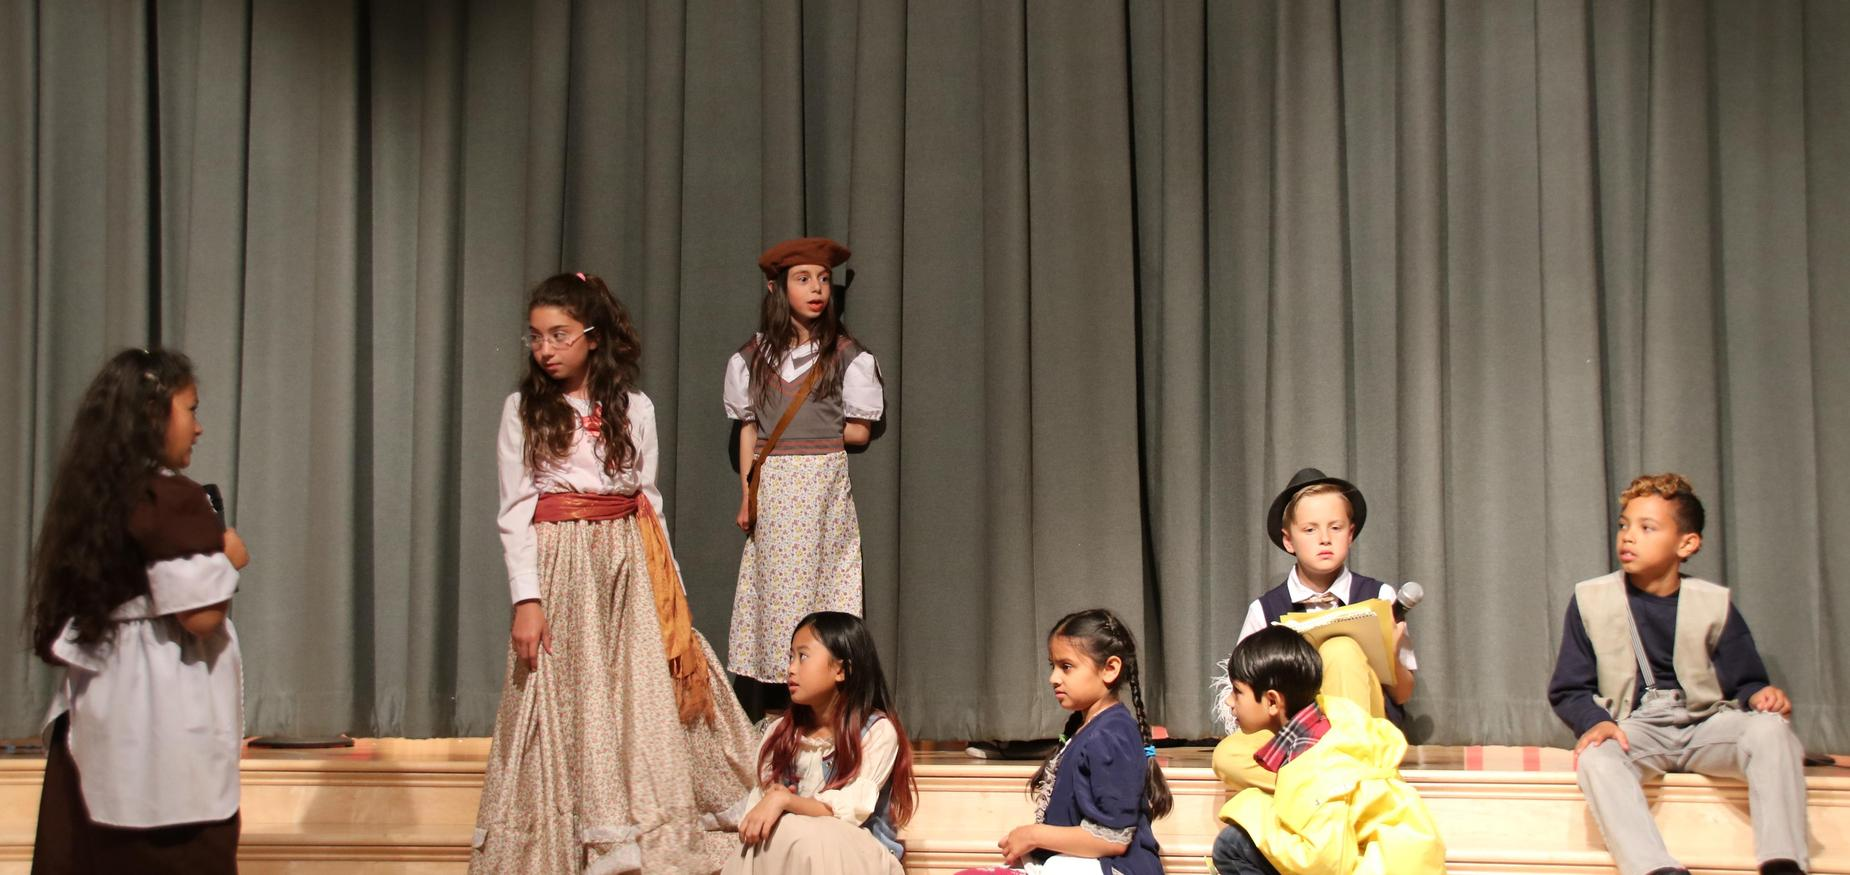 Students on stage performing The Adventures of Pinocchio